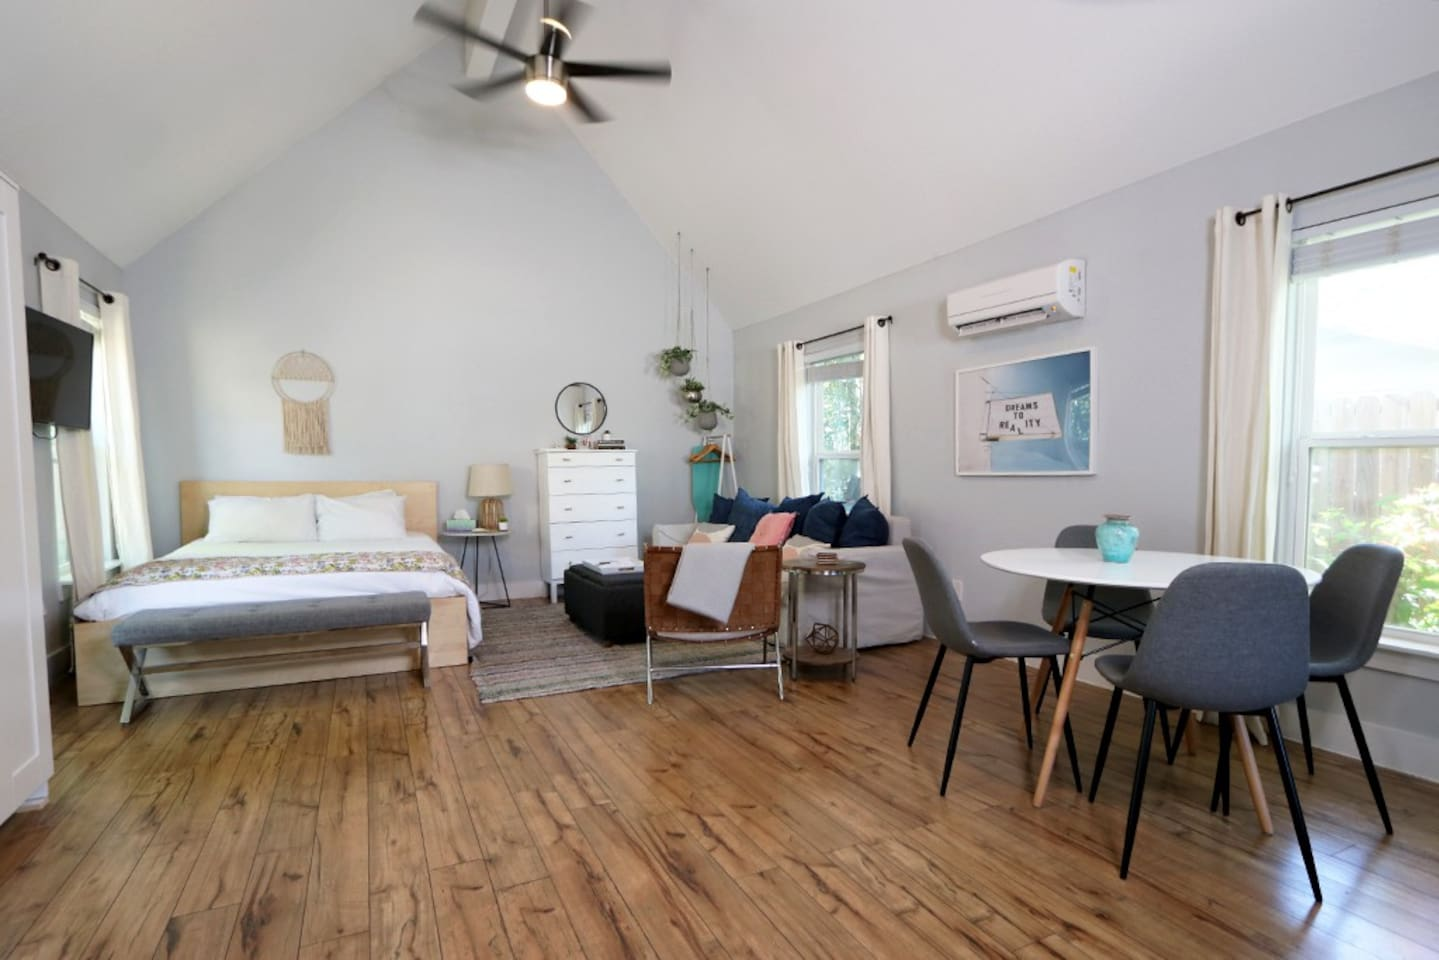 While visiting Austin, you can call this guesthouse/studio your home away from home. Perfect for a single traveler or a couple, this open-floor guesthouse will definitely suit your needs.